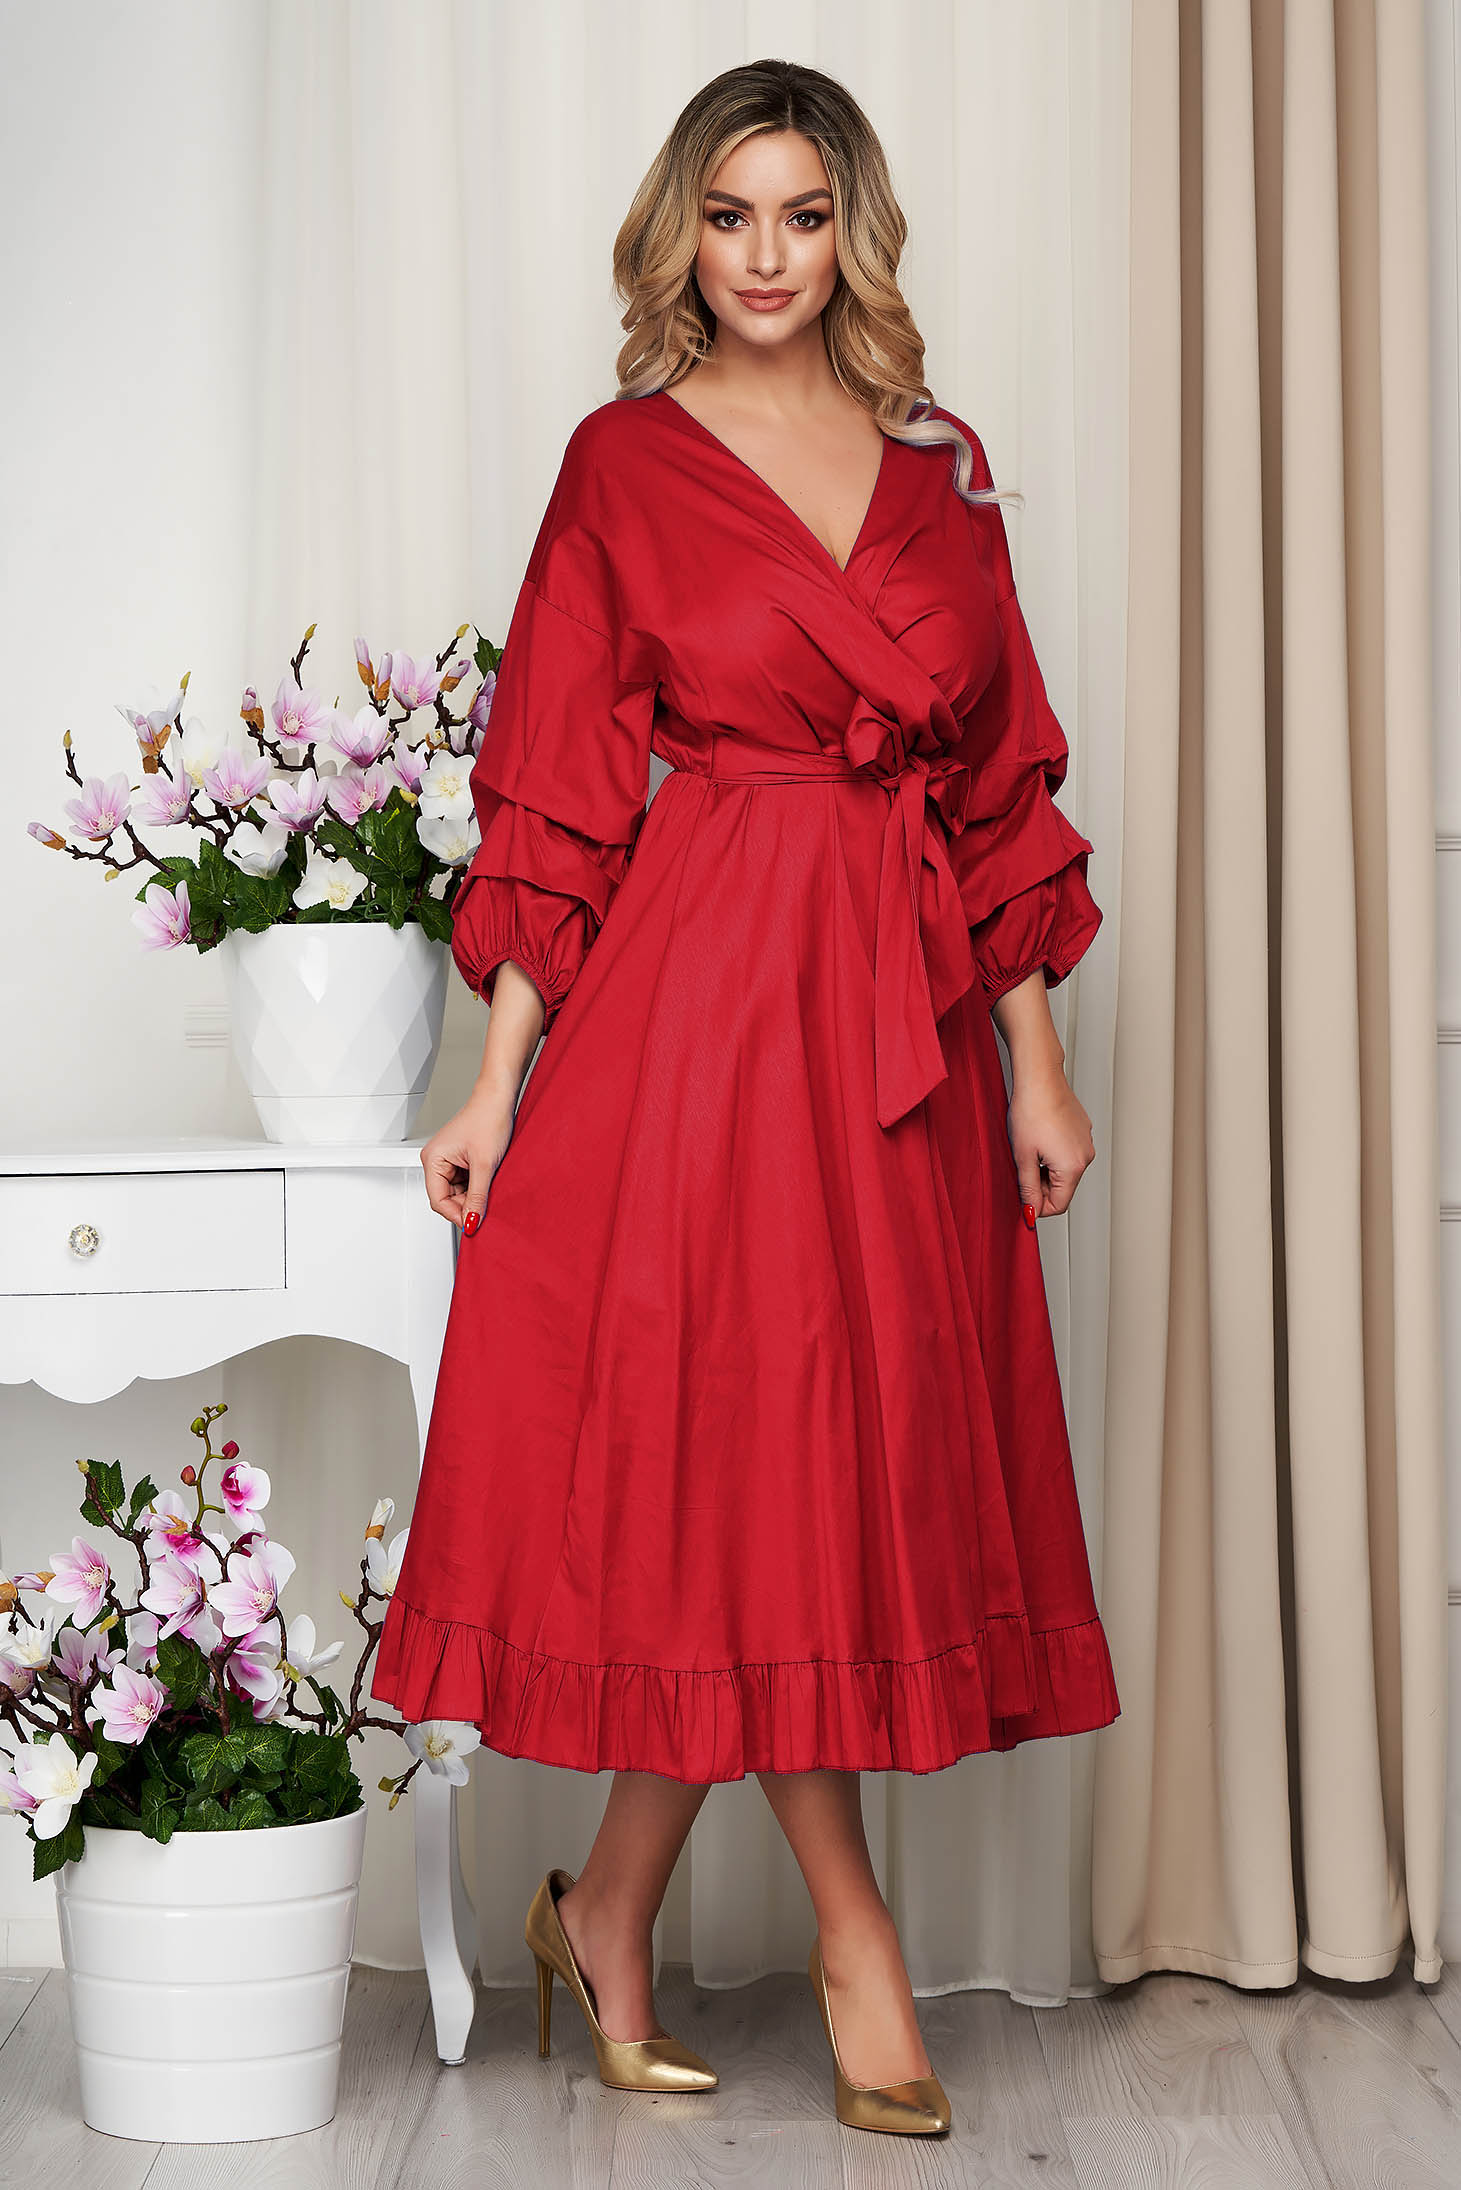 Red dress poplin, thin cotton accessorized with tied waistband cloche with elastic waist